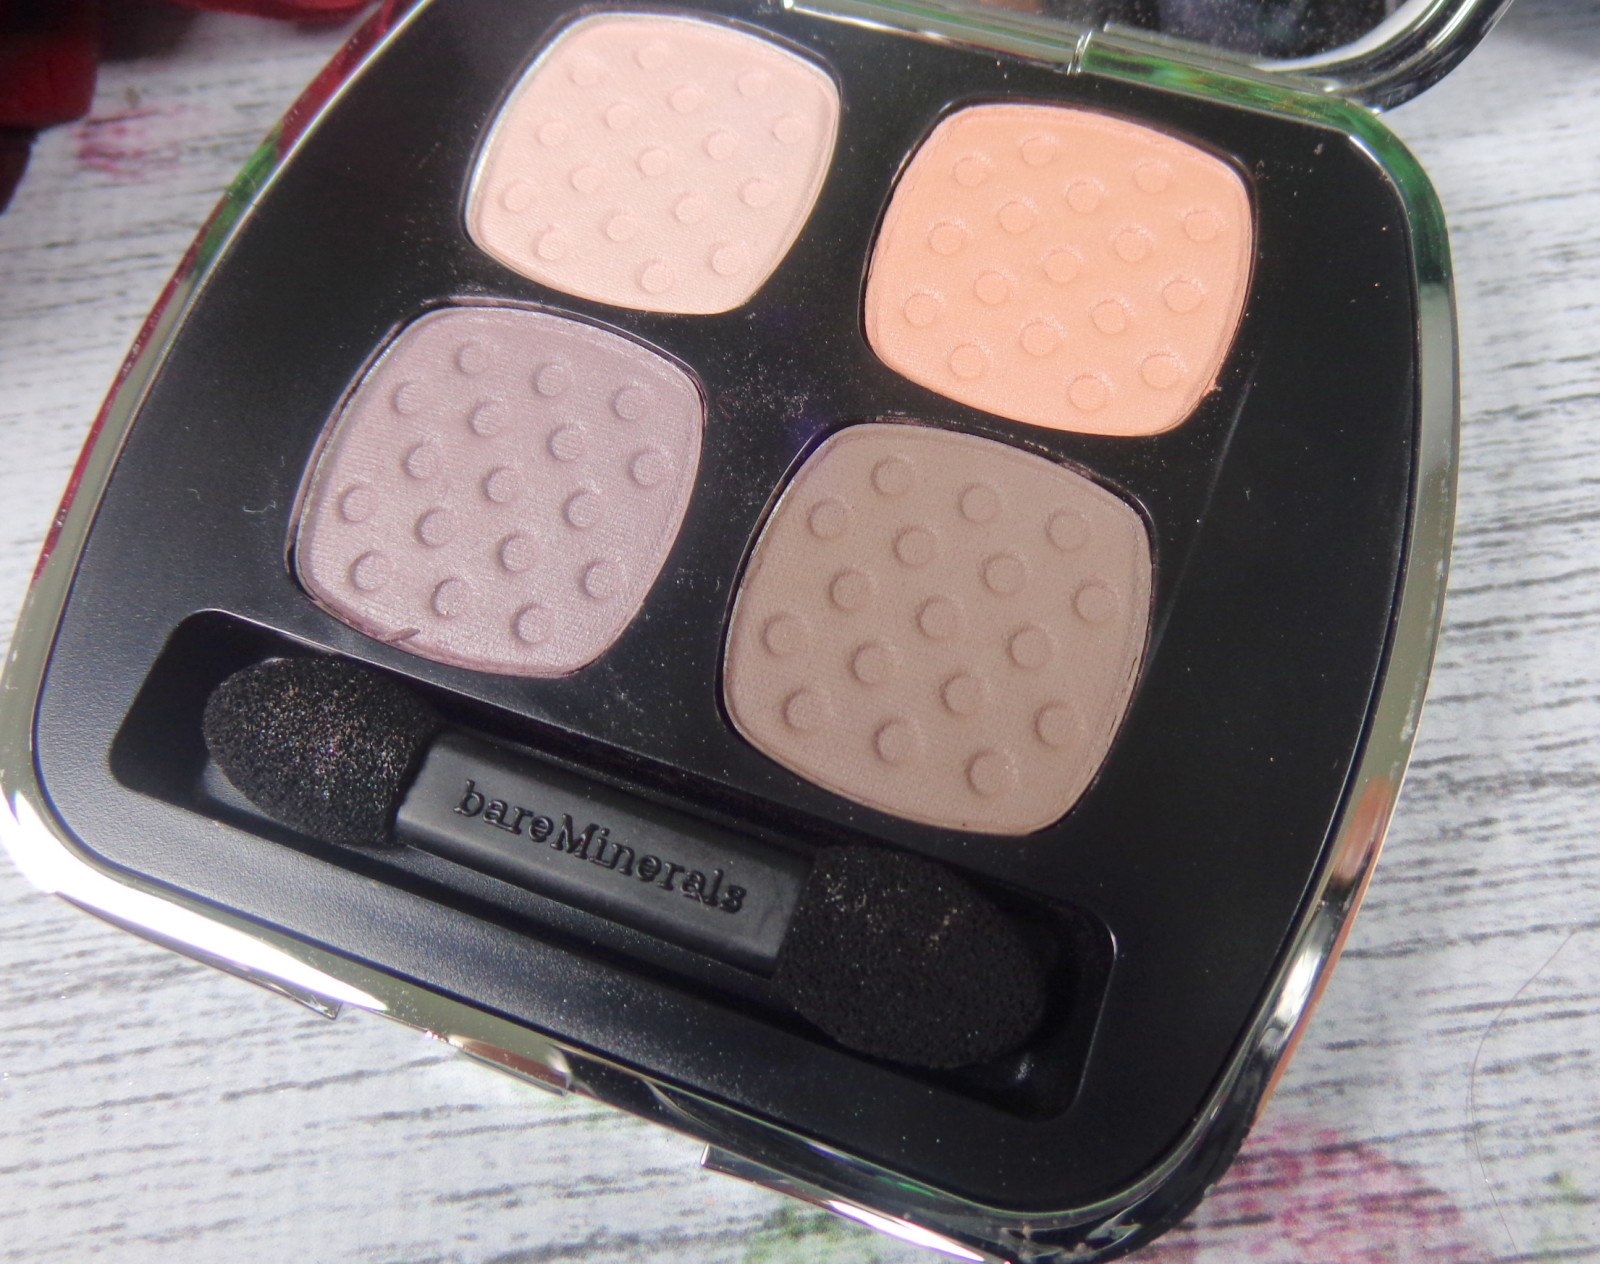 BareMinerals Modern Icon Eyeshadows